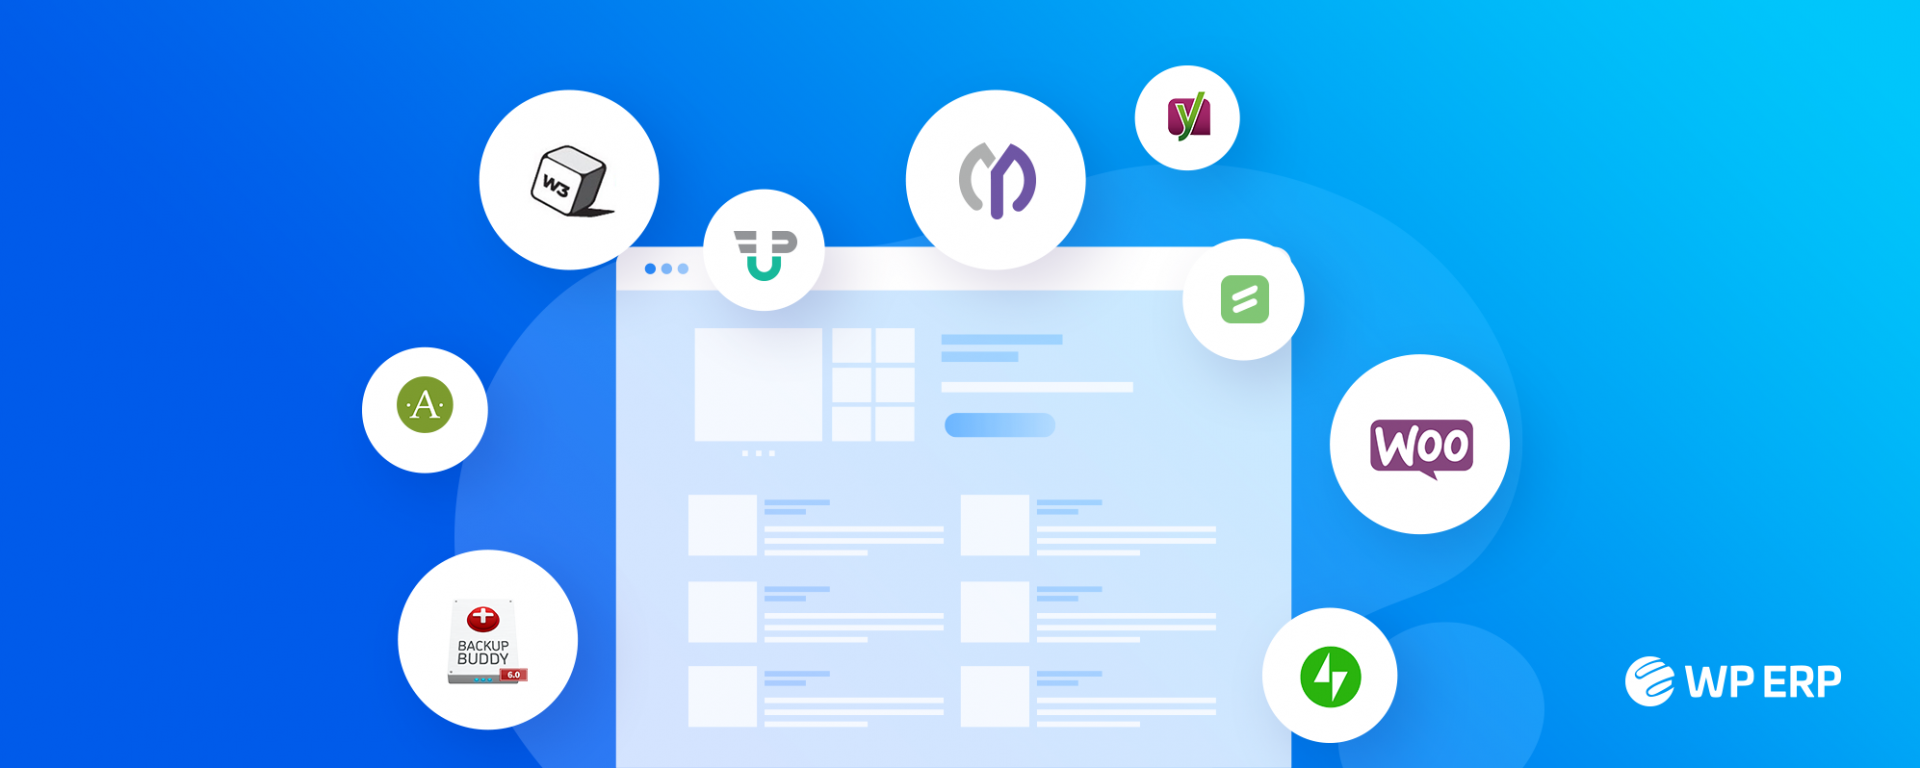 Must Have WordPress Plugins for Business Websites in 2019